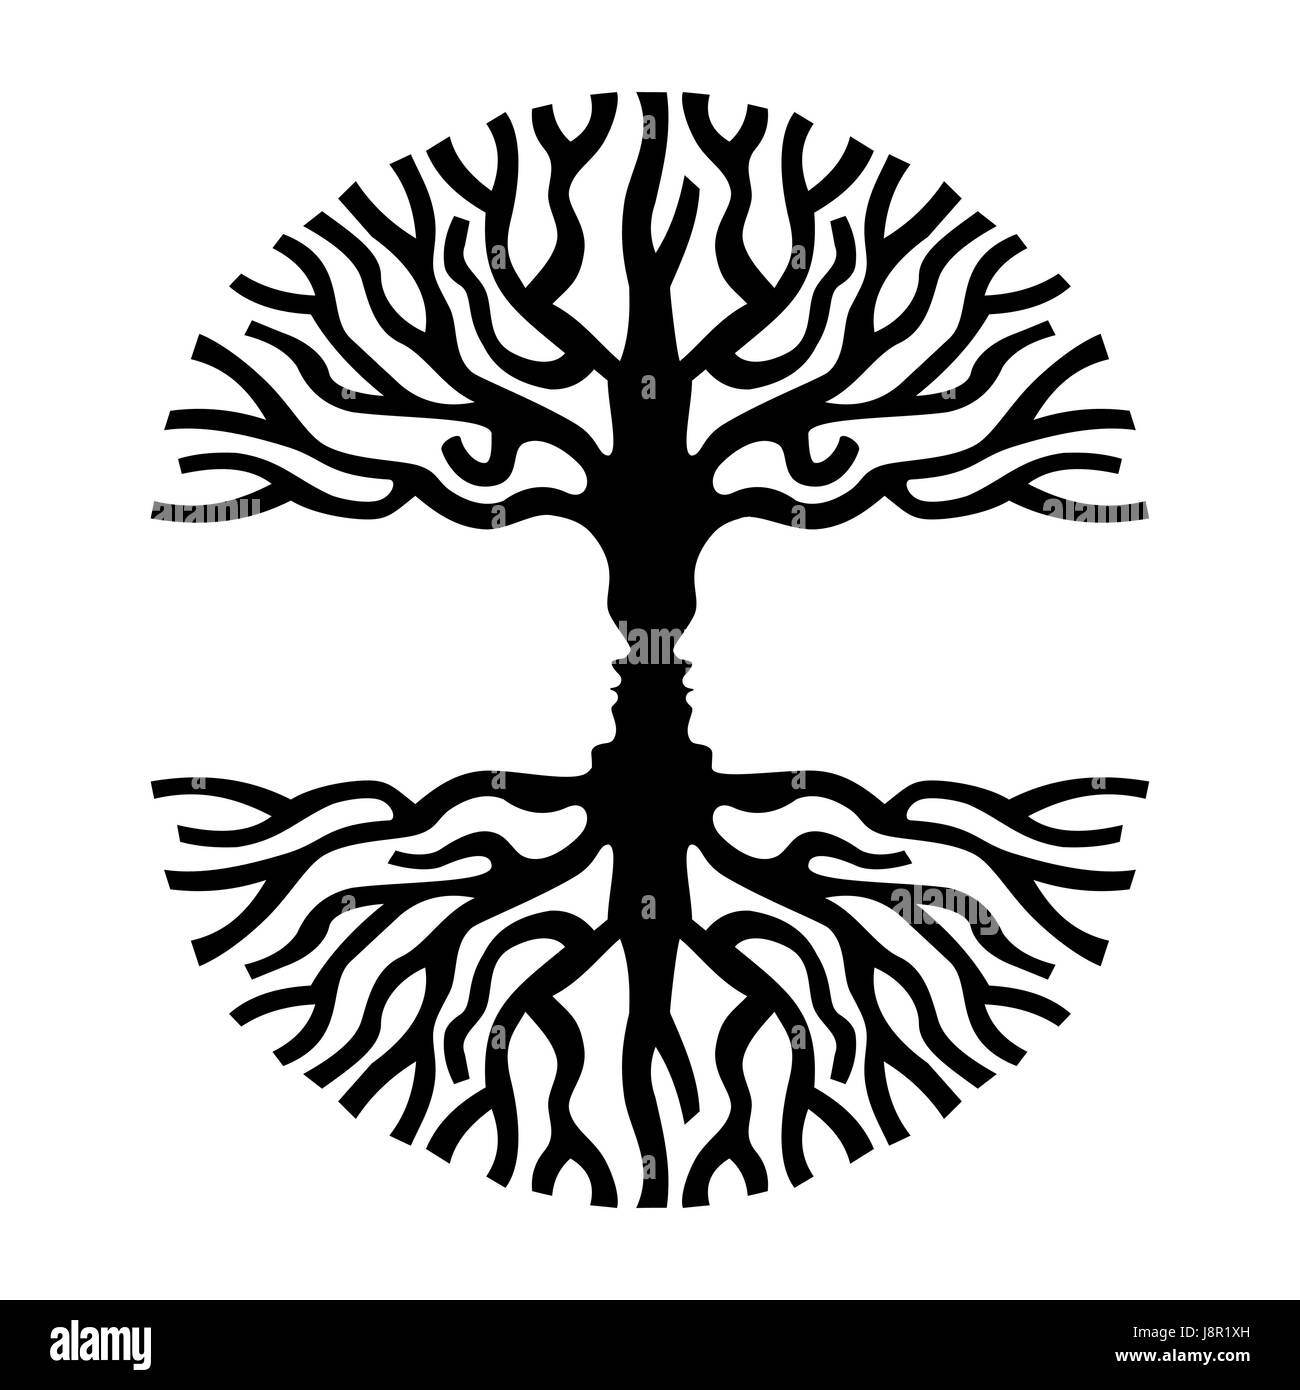 Tree branches shape with opposite human faces silhouette concept optic art symbol for psychology